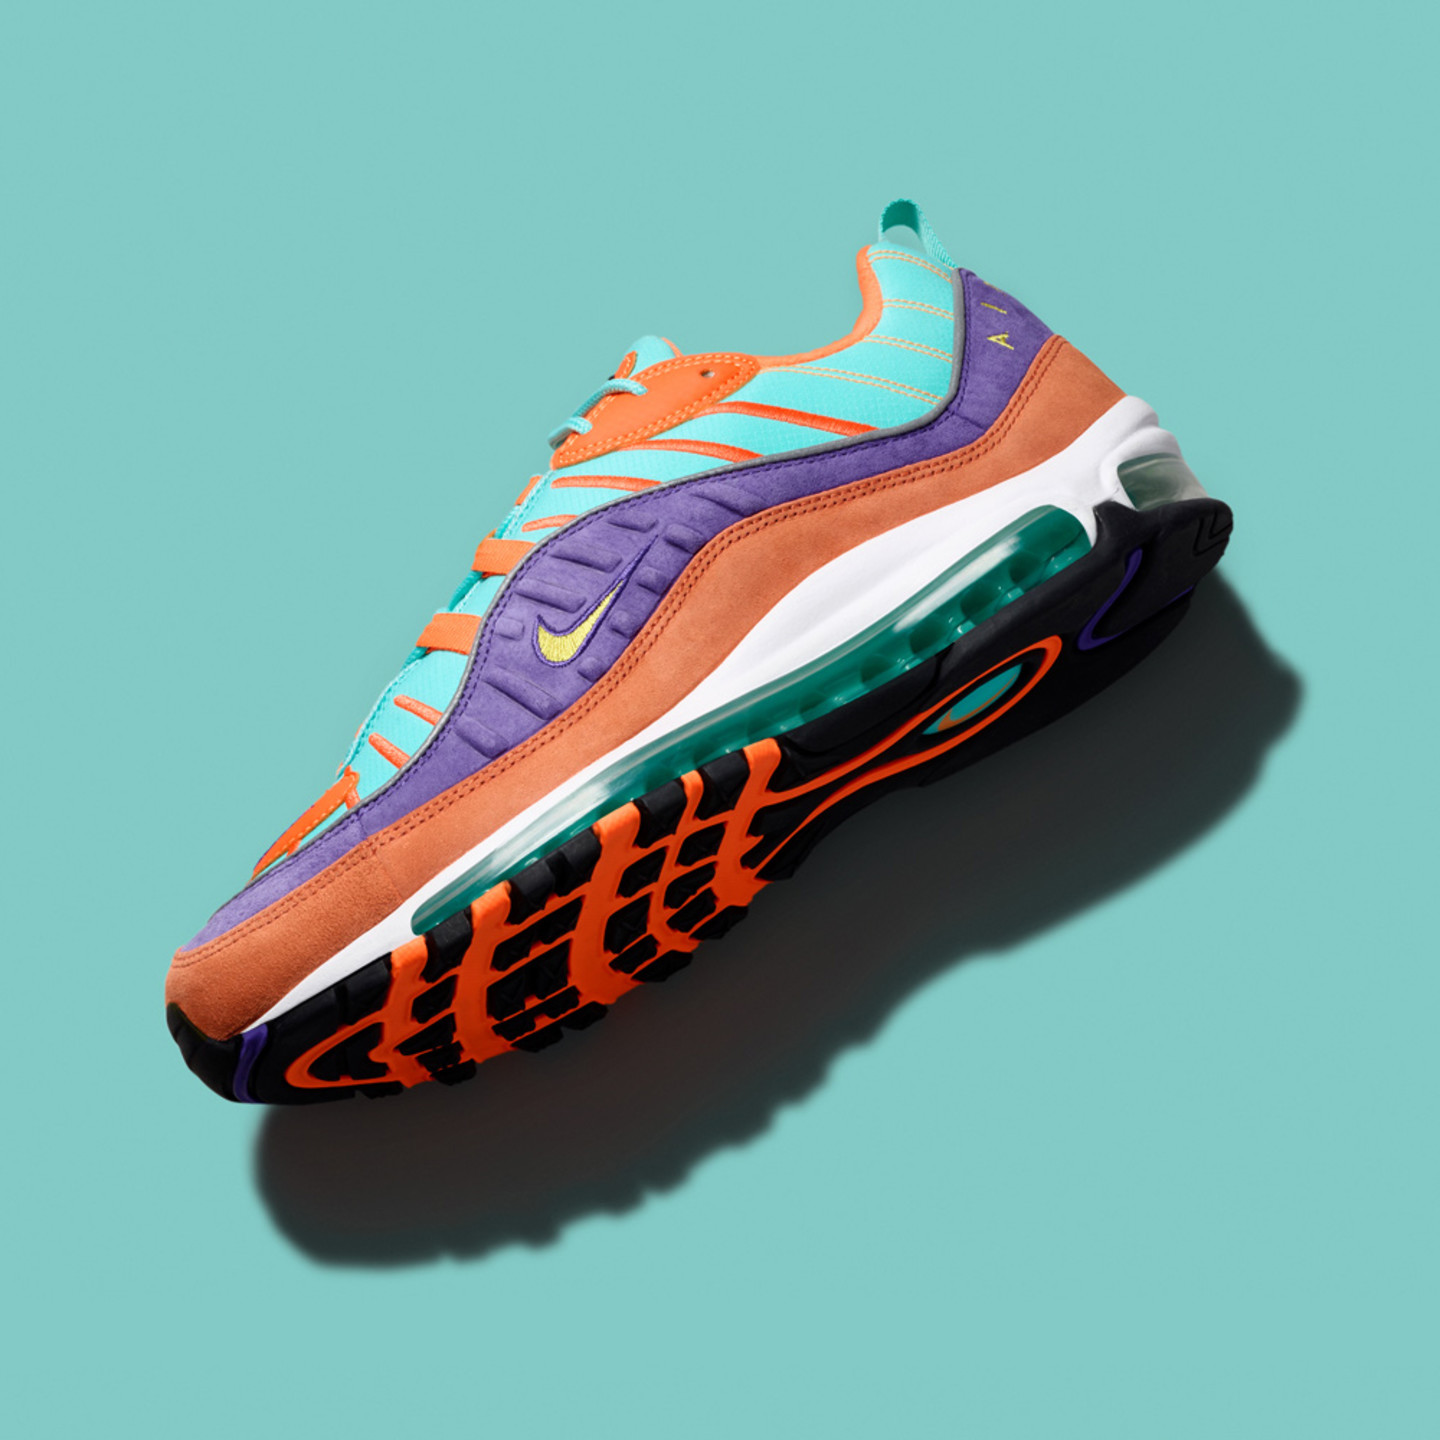 Nike Air Max 98 QS 'Hyper Flash' Cone / Tour Yellow / Hyper Grape 924462-800